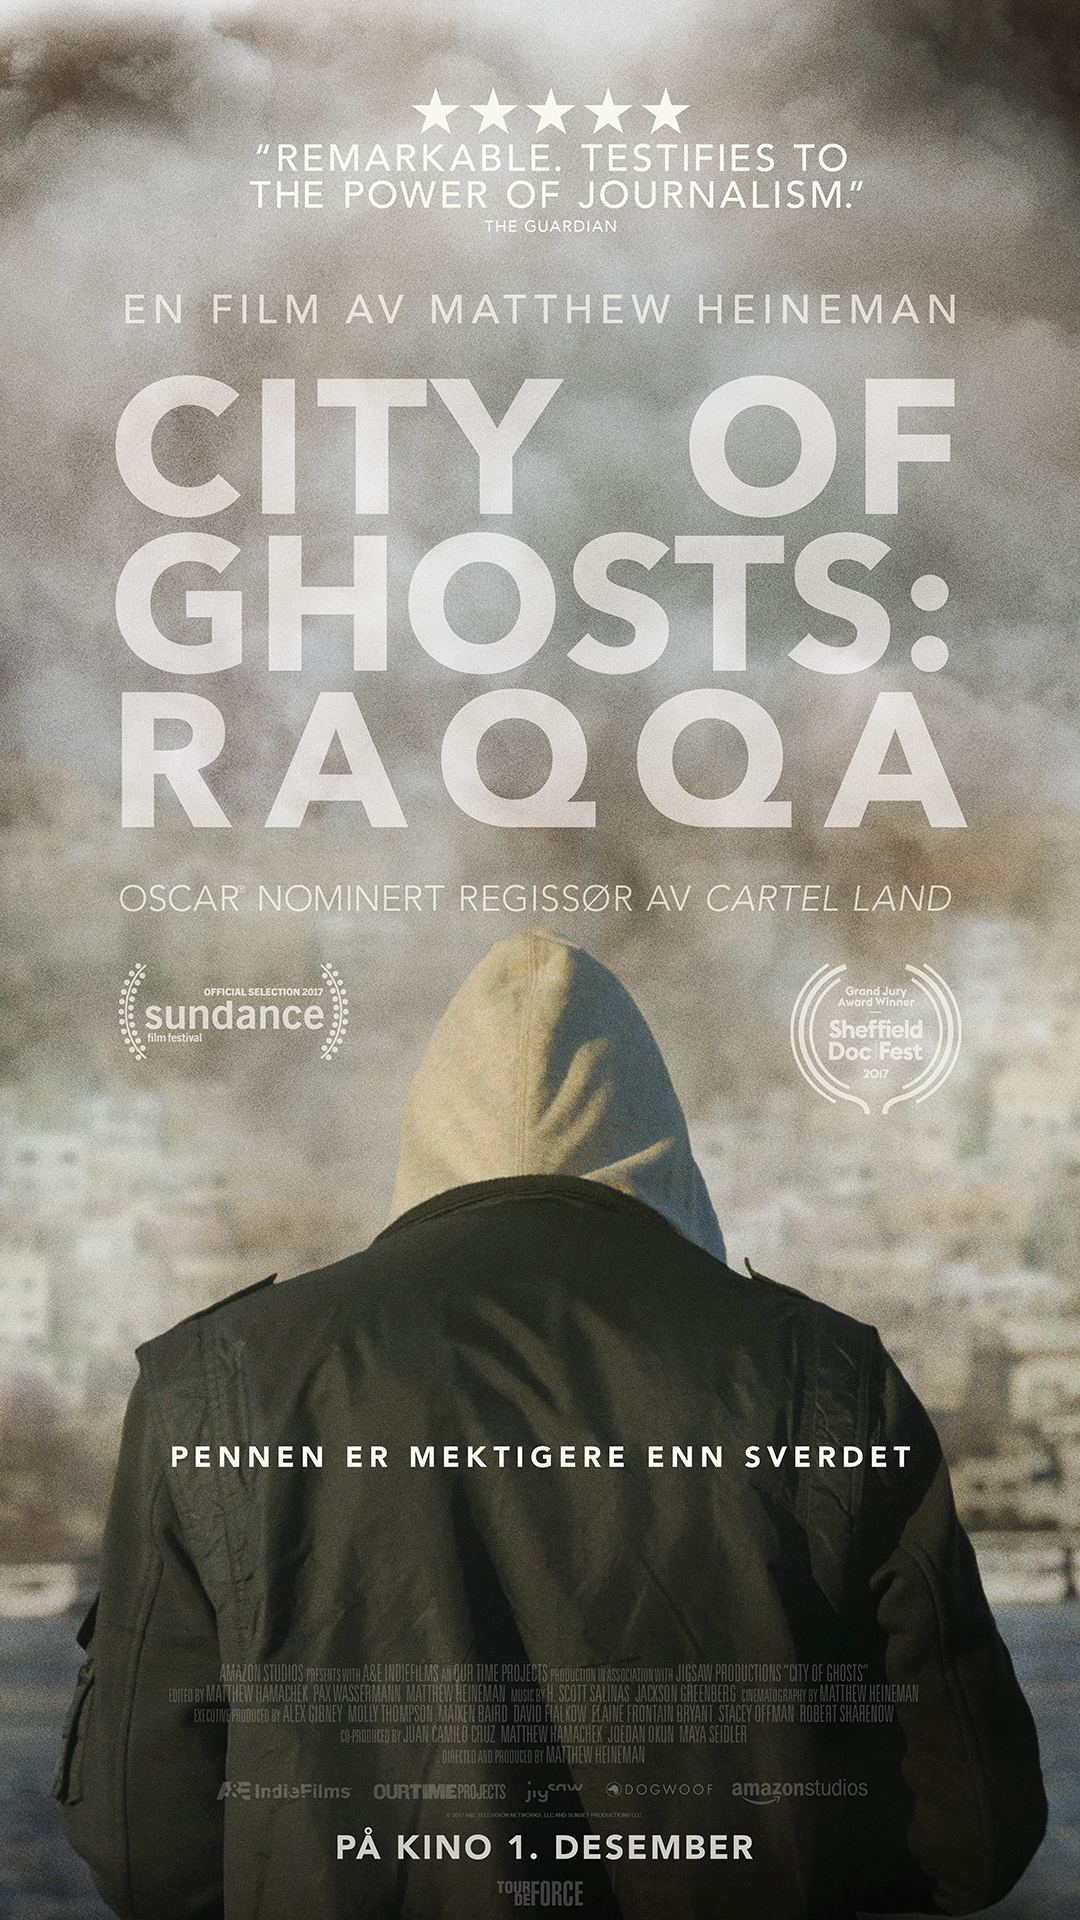 City of Ghosts: Raqqa